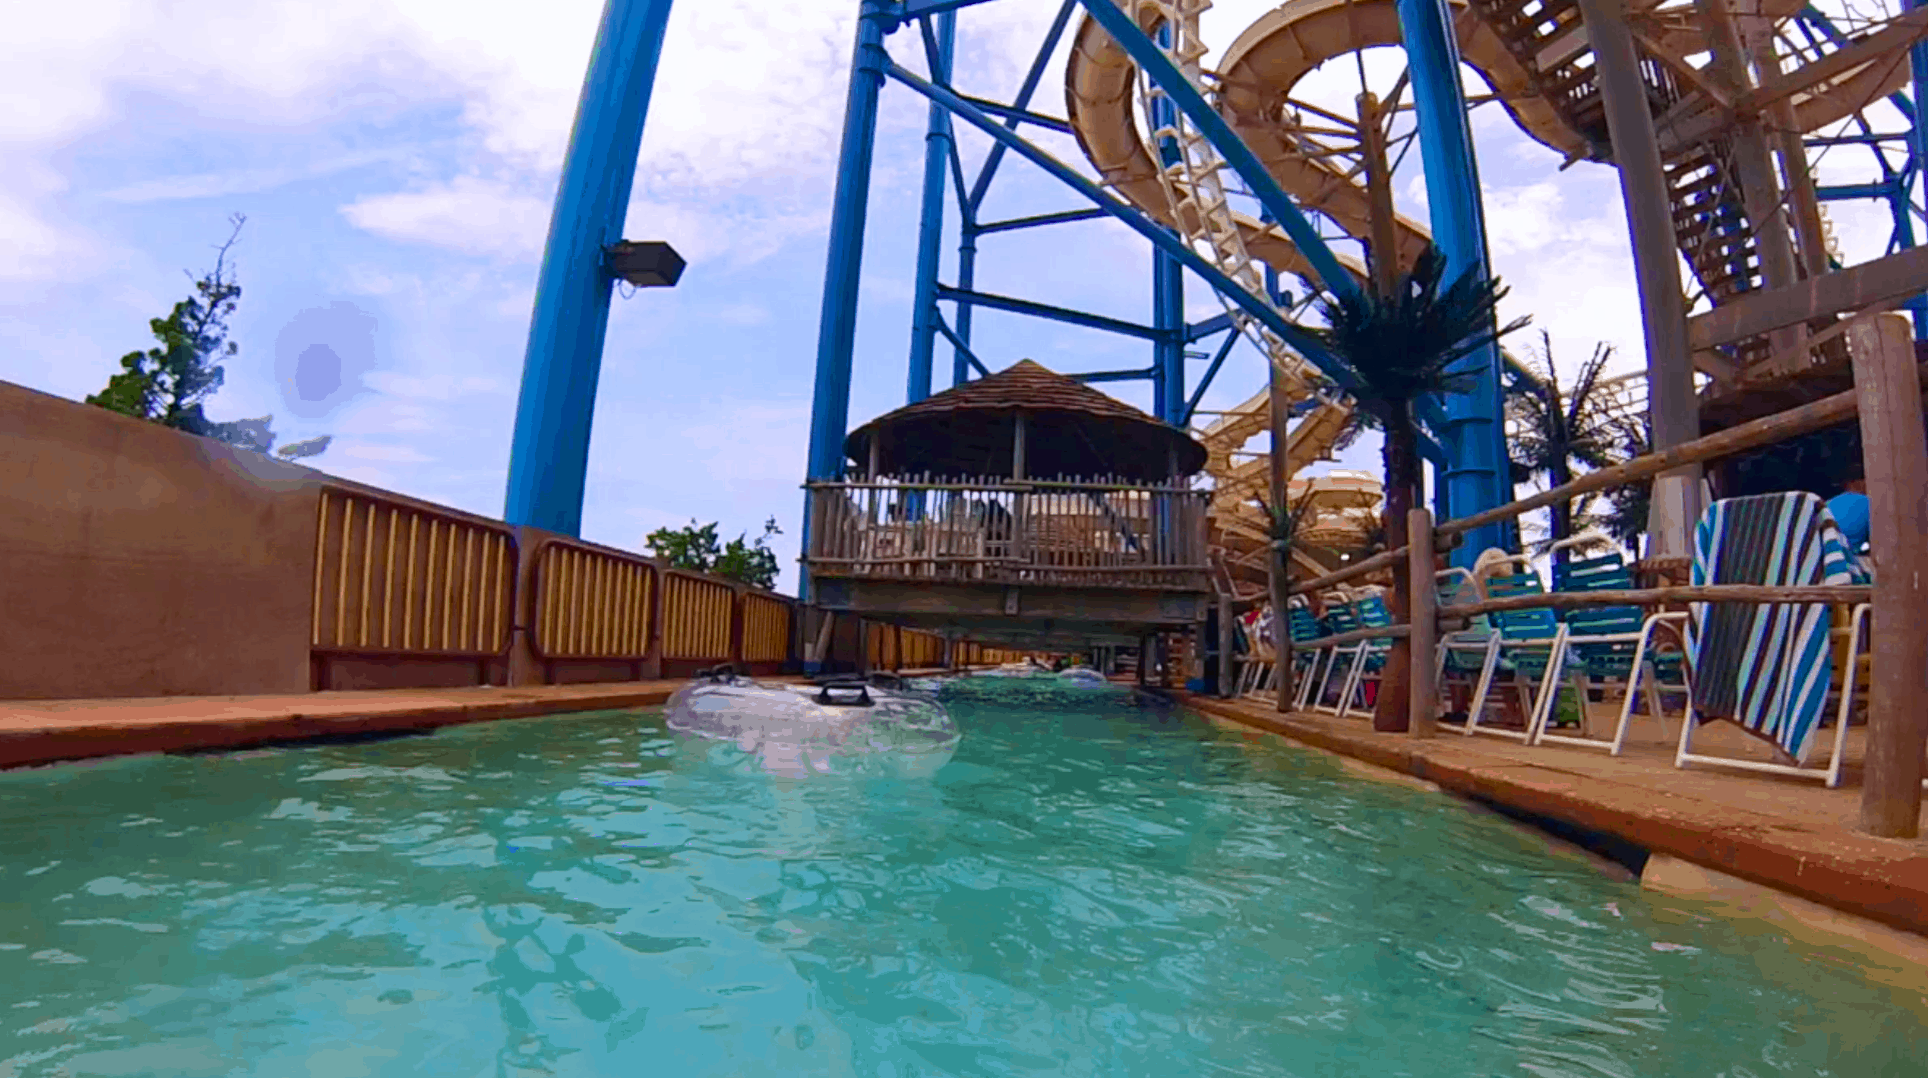 A Trip On The Lazy River